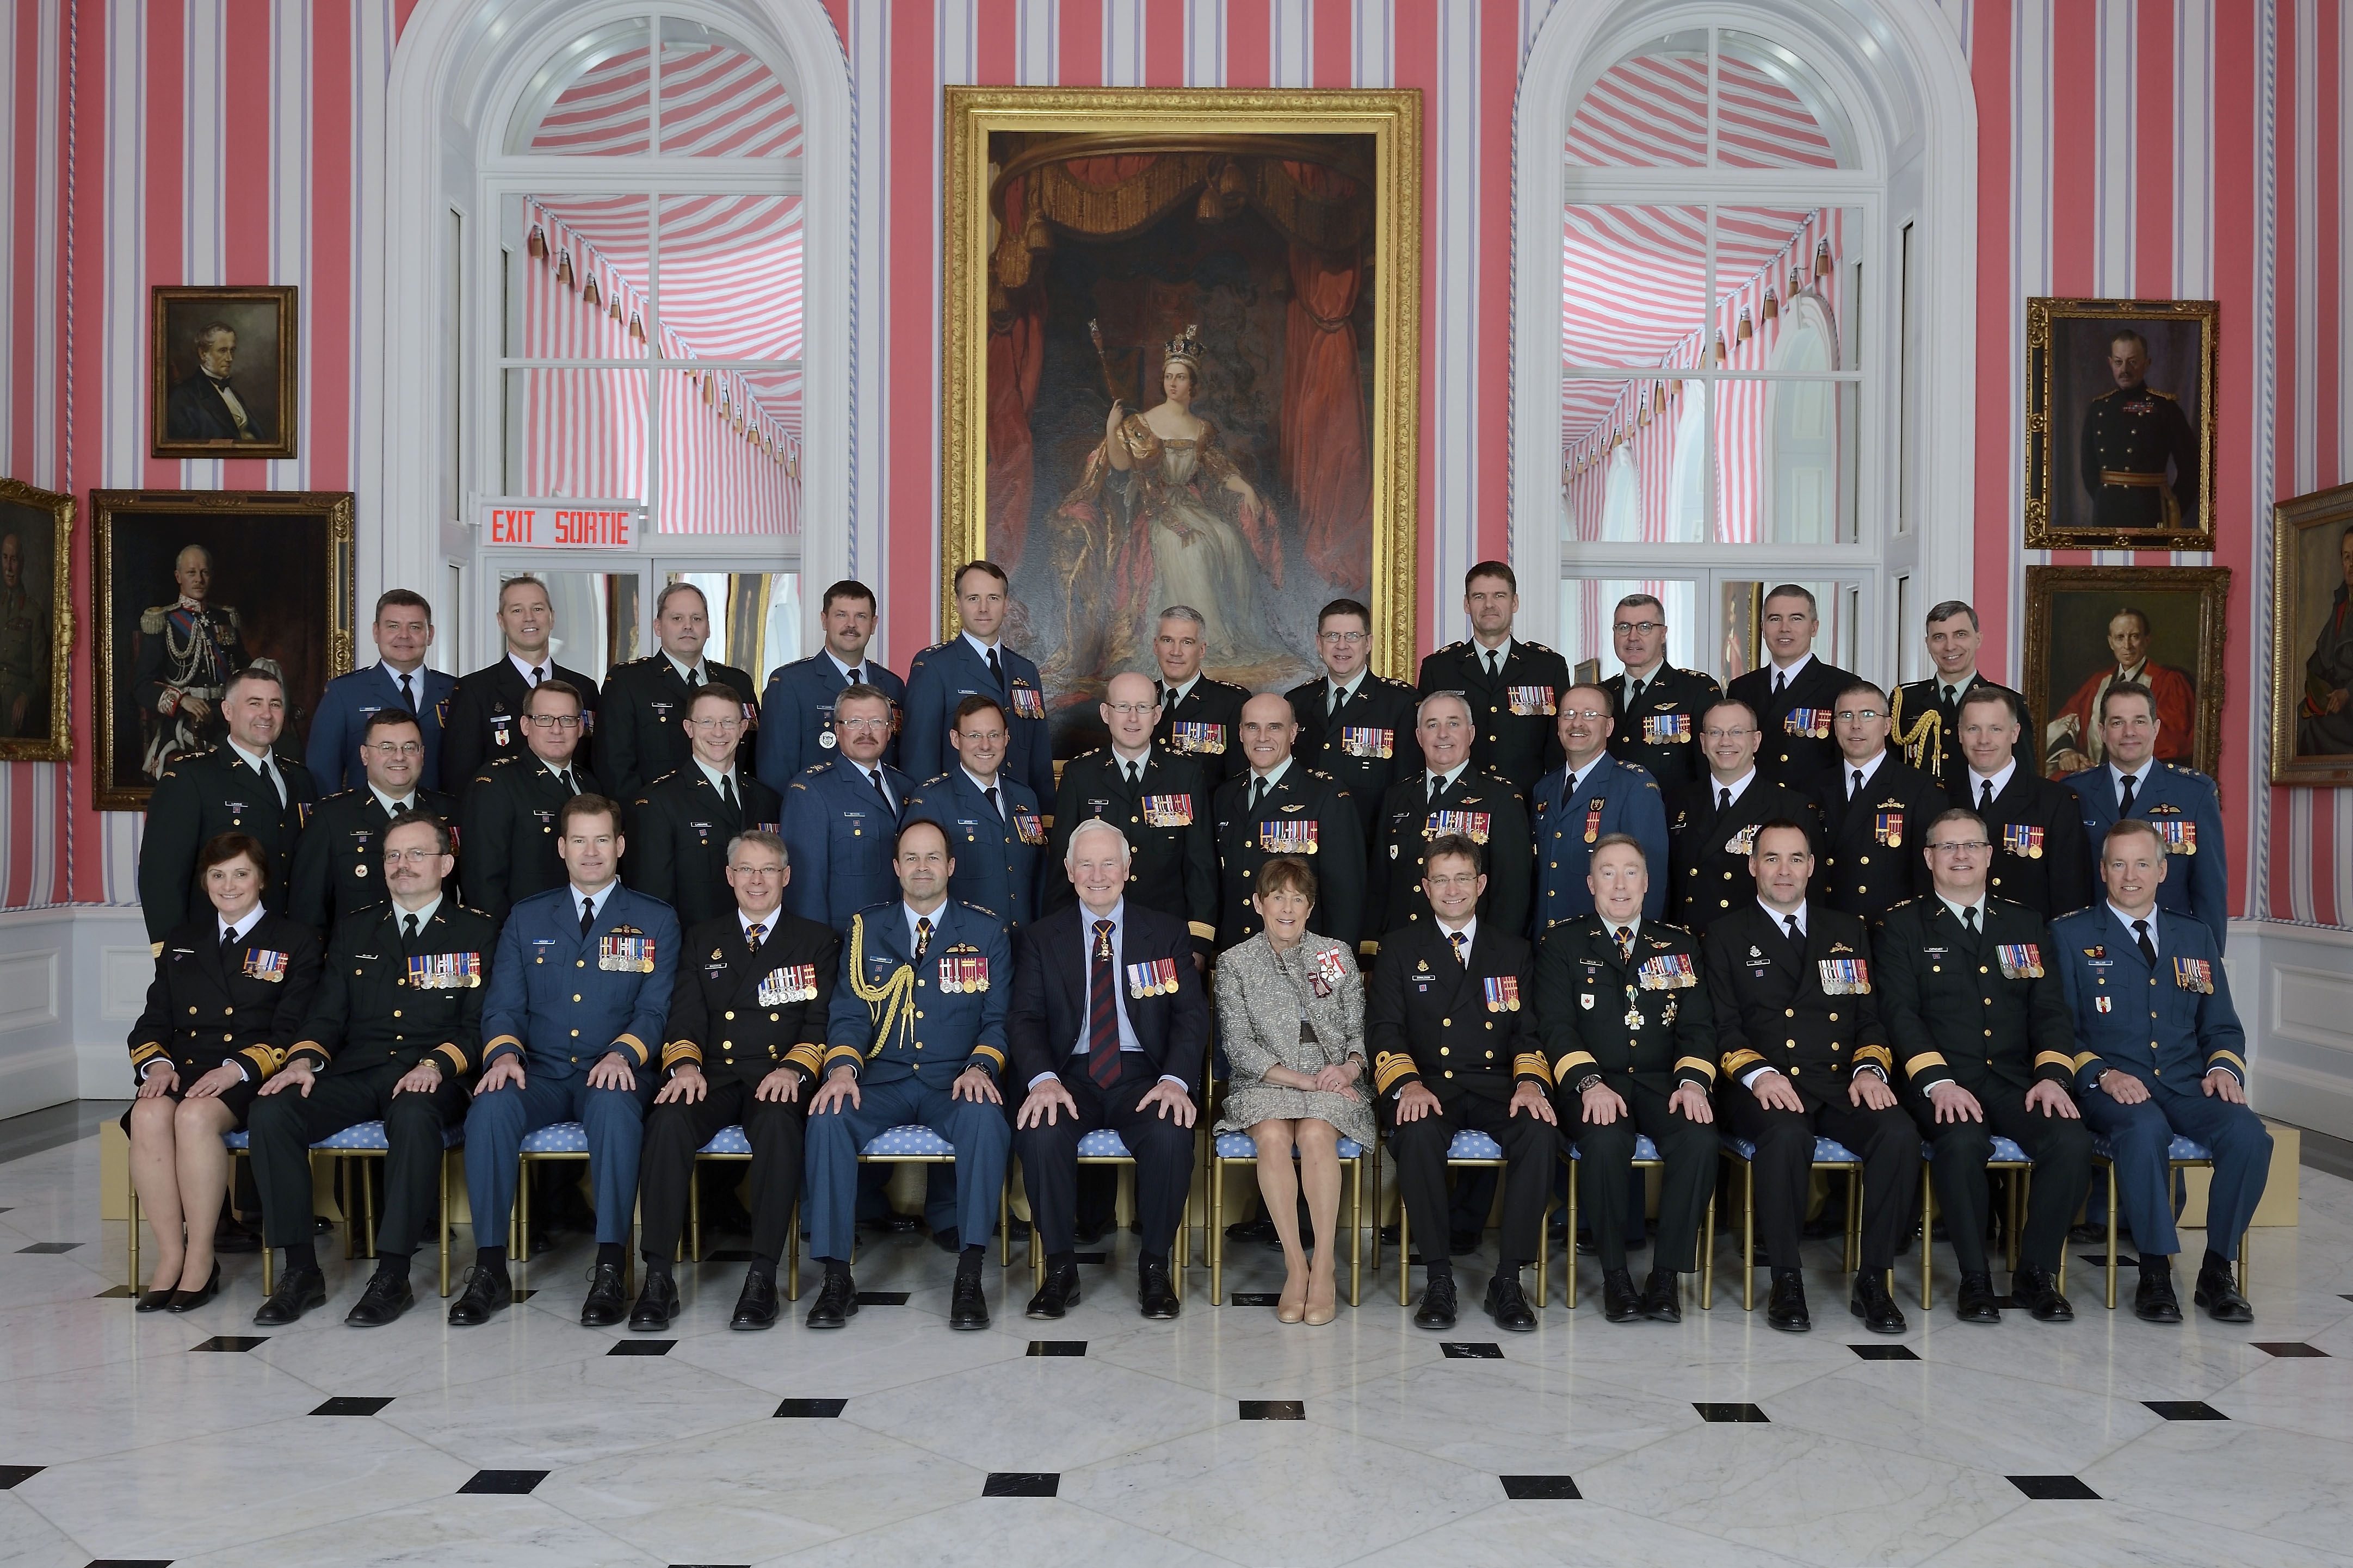 Twenty-six Canadian Forces members received their scrolls from the Governor General and the Chief of the Defense Staff.